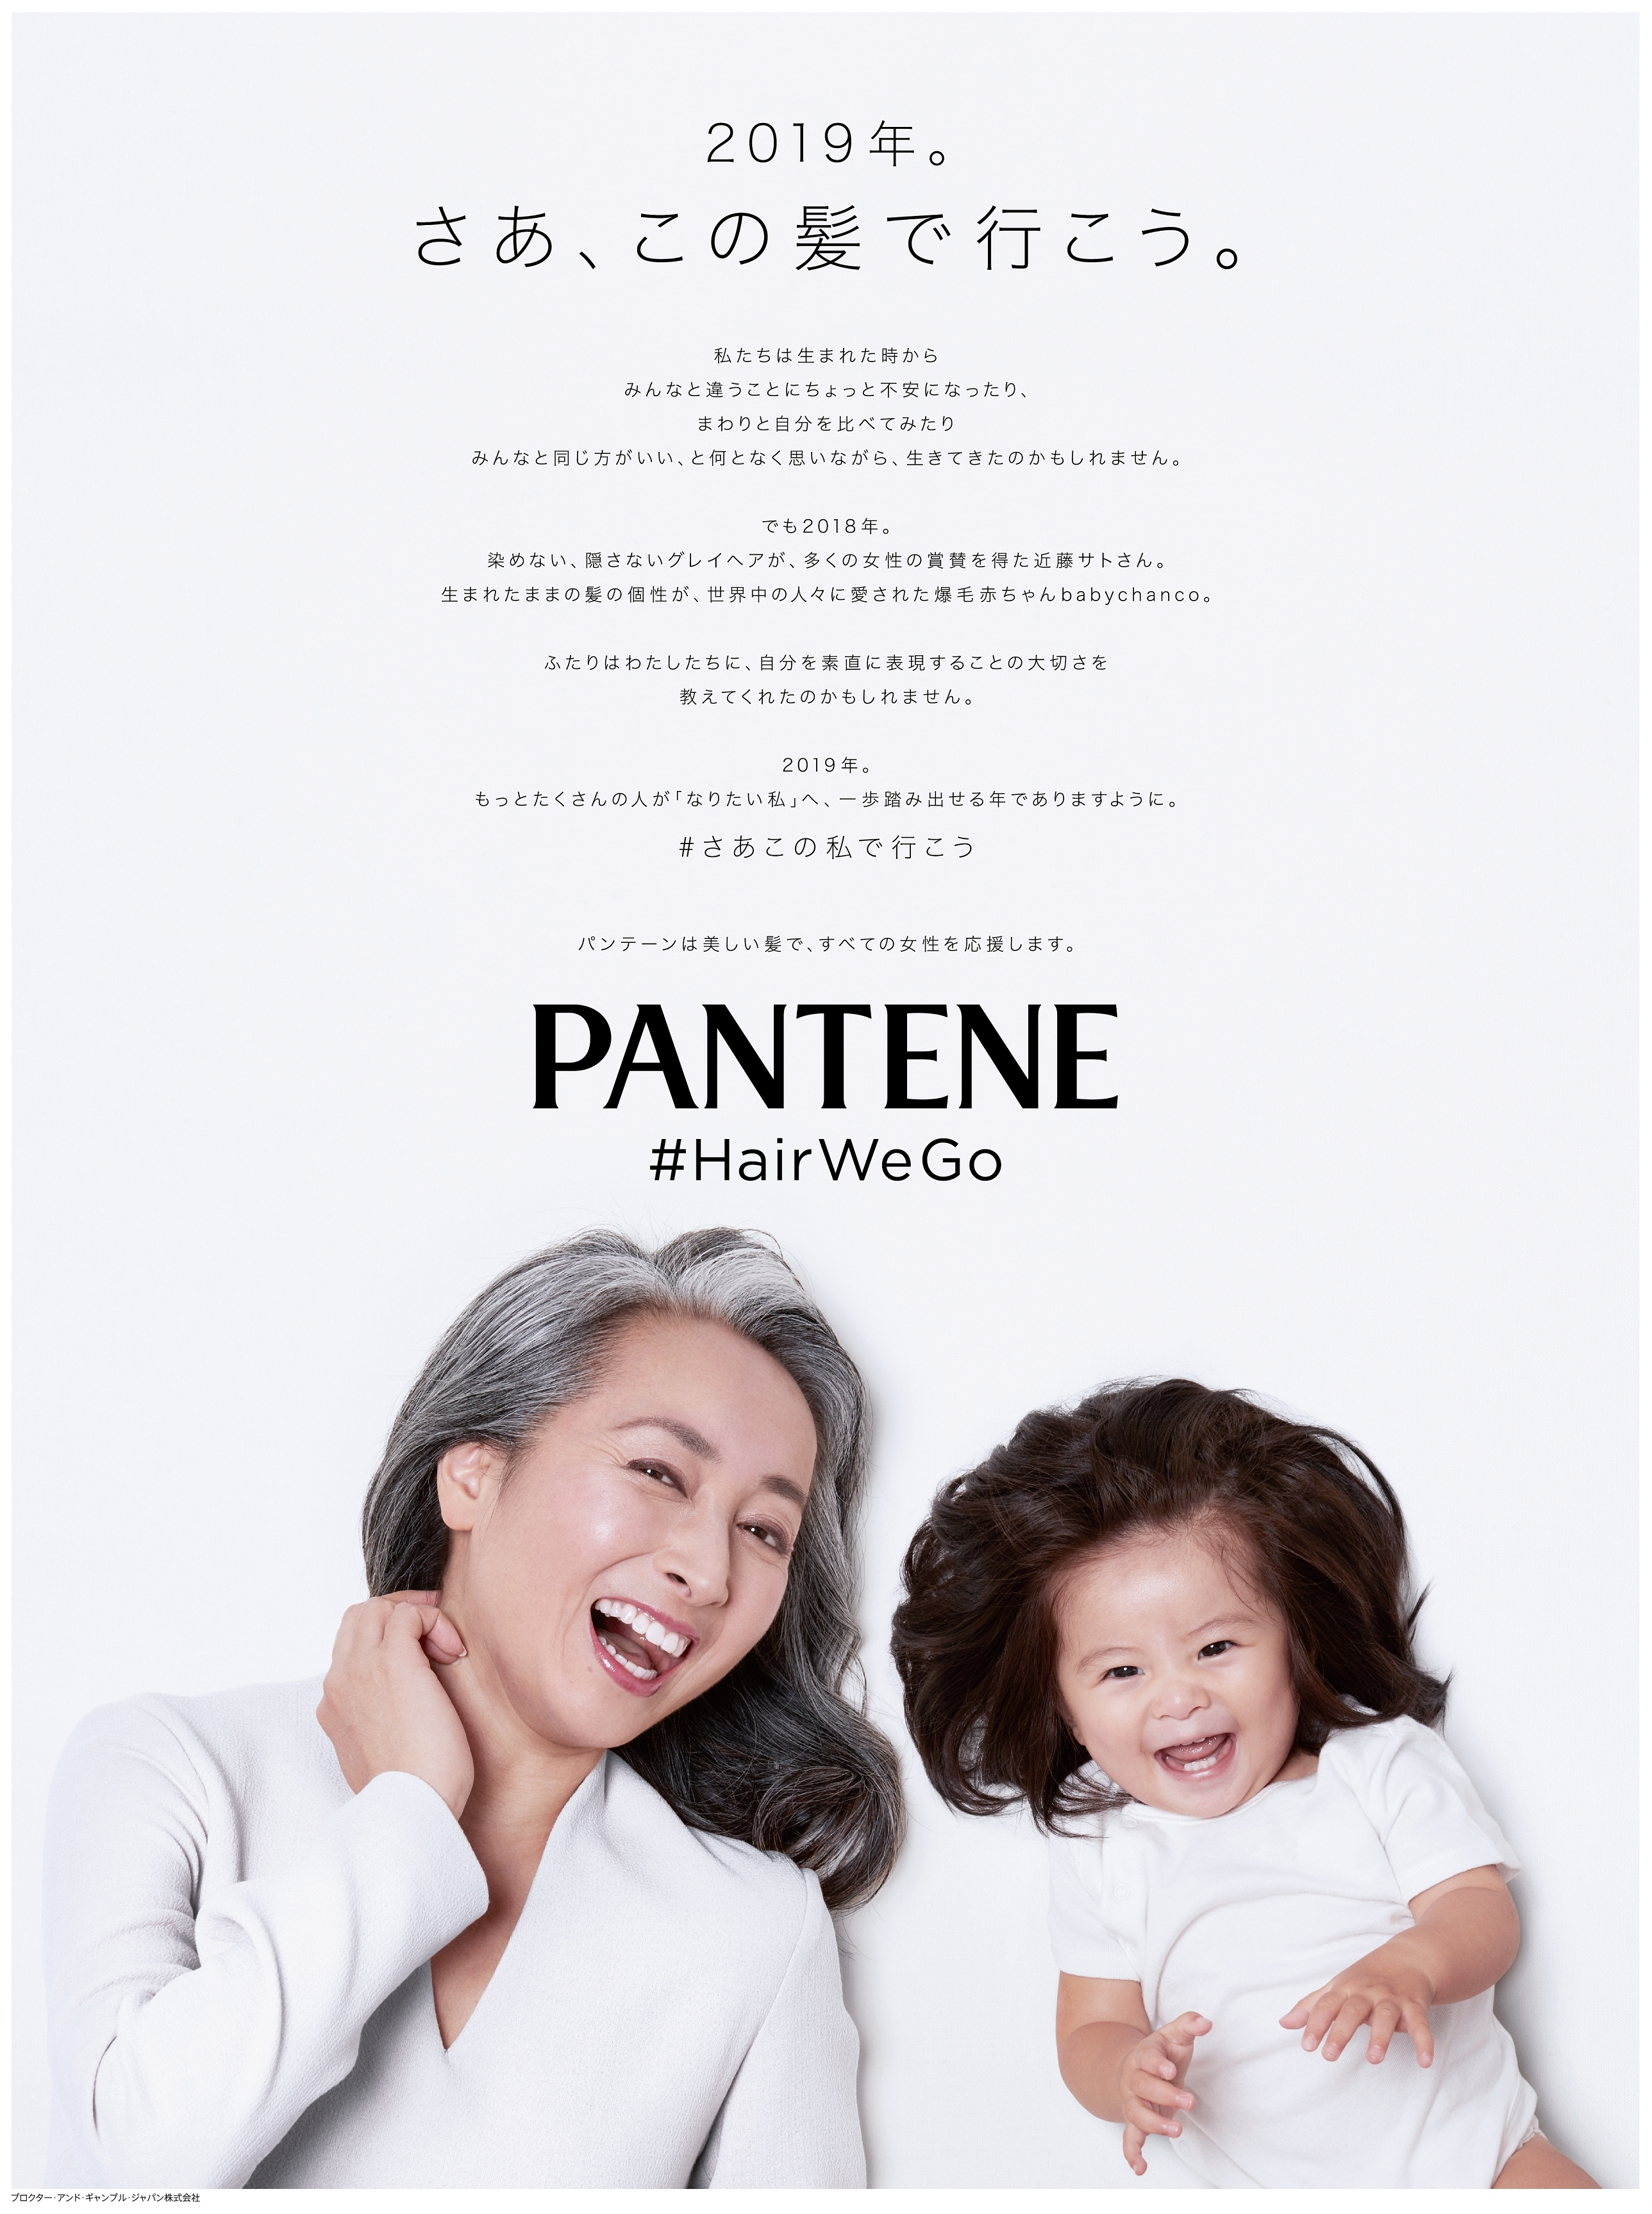 P G Pantene Japan Launched The Advertising Campaign Hairwego My